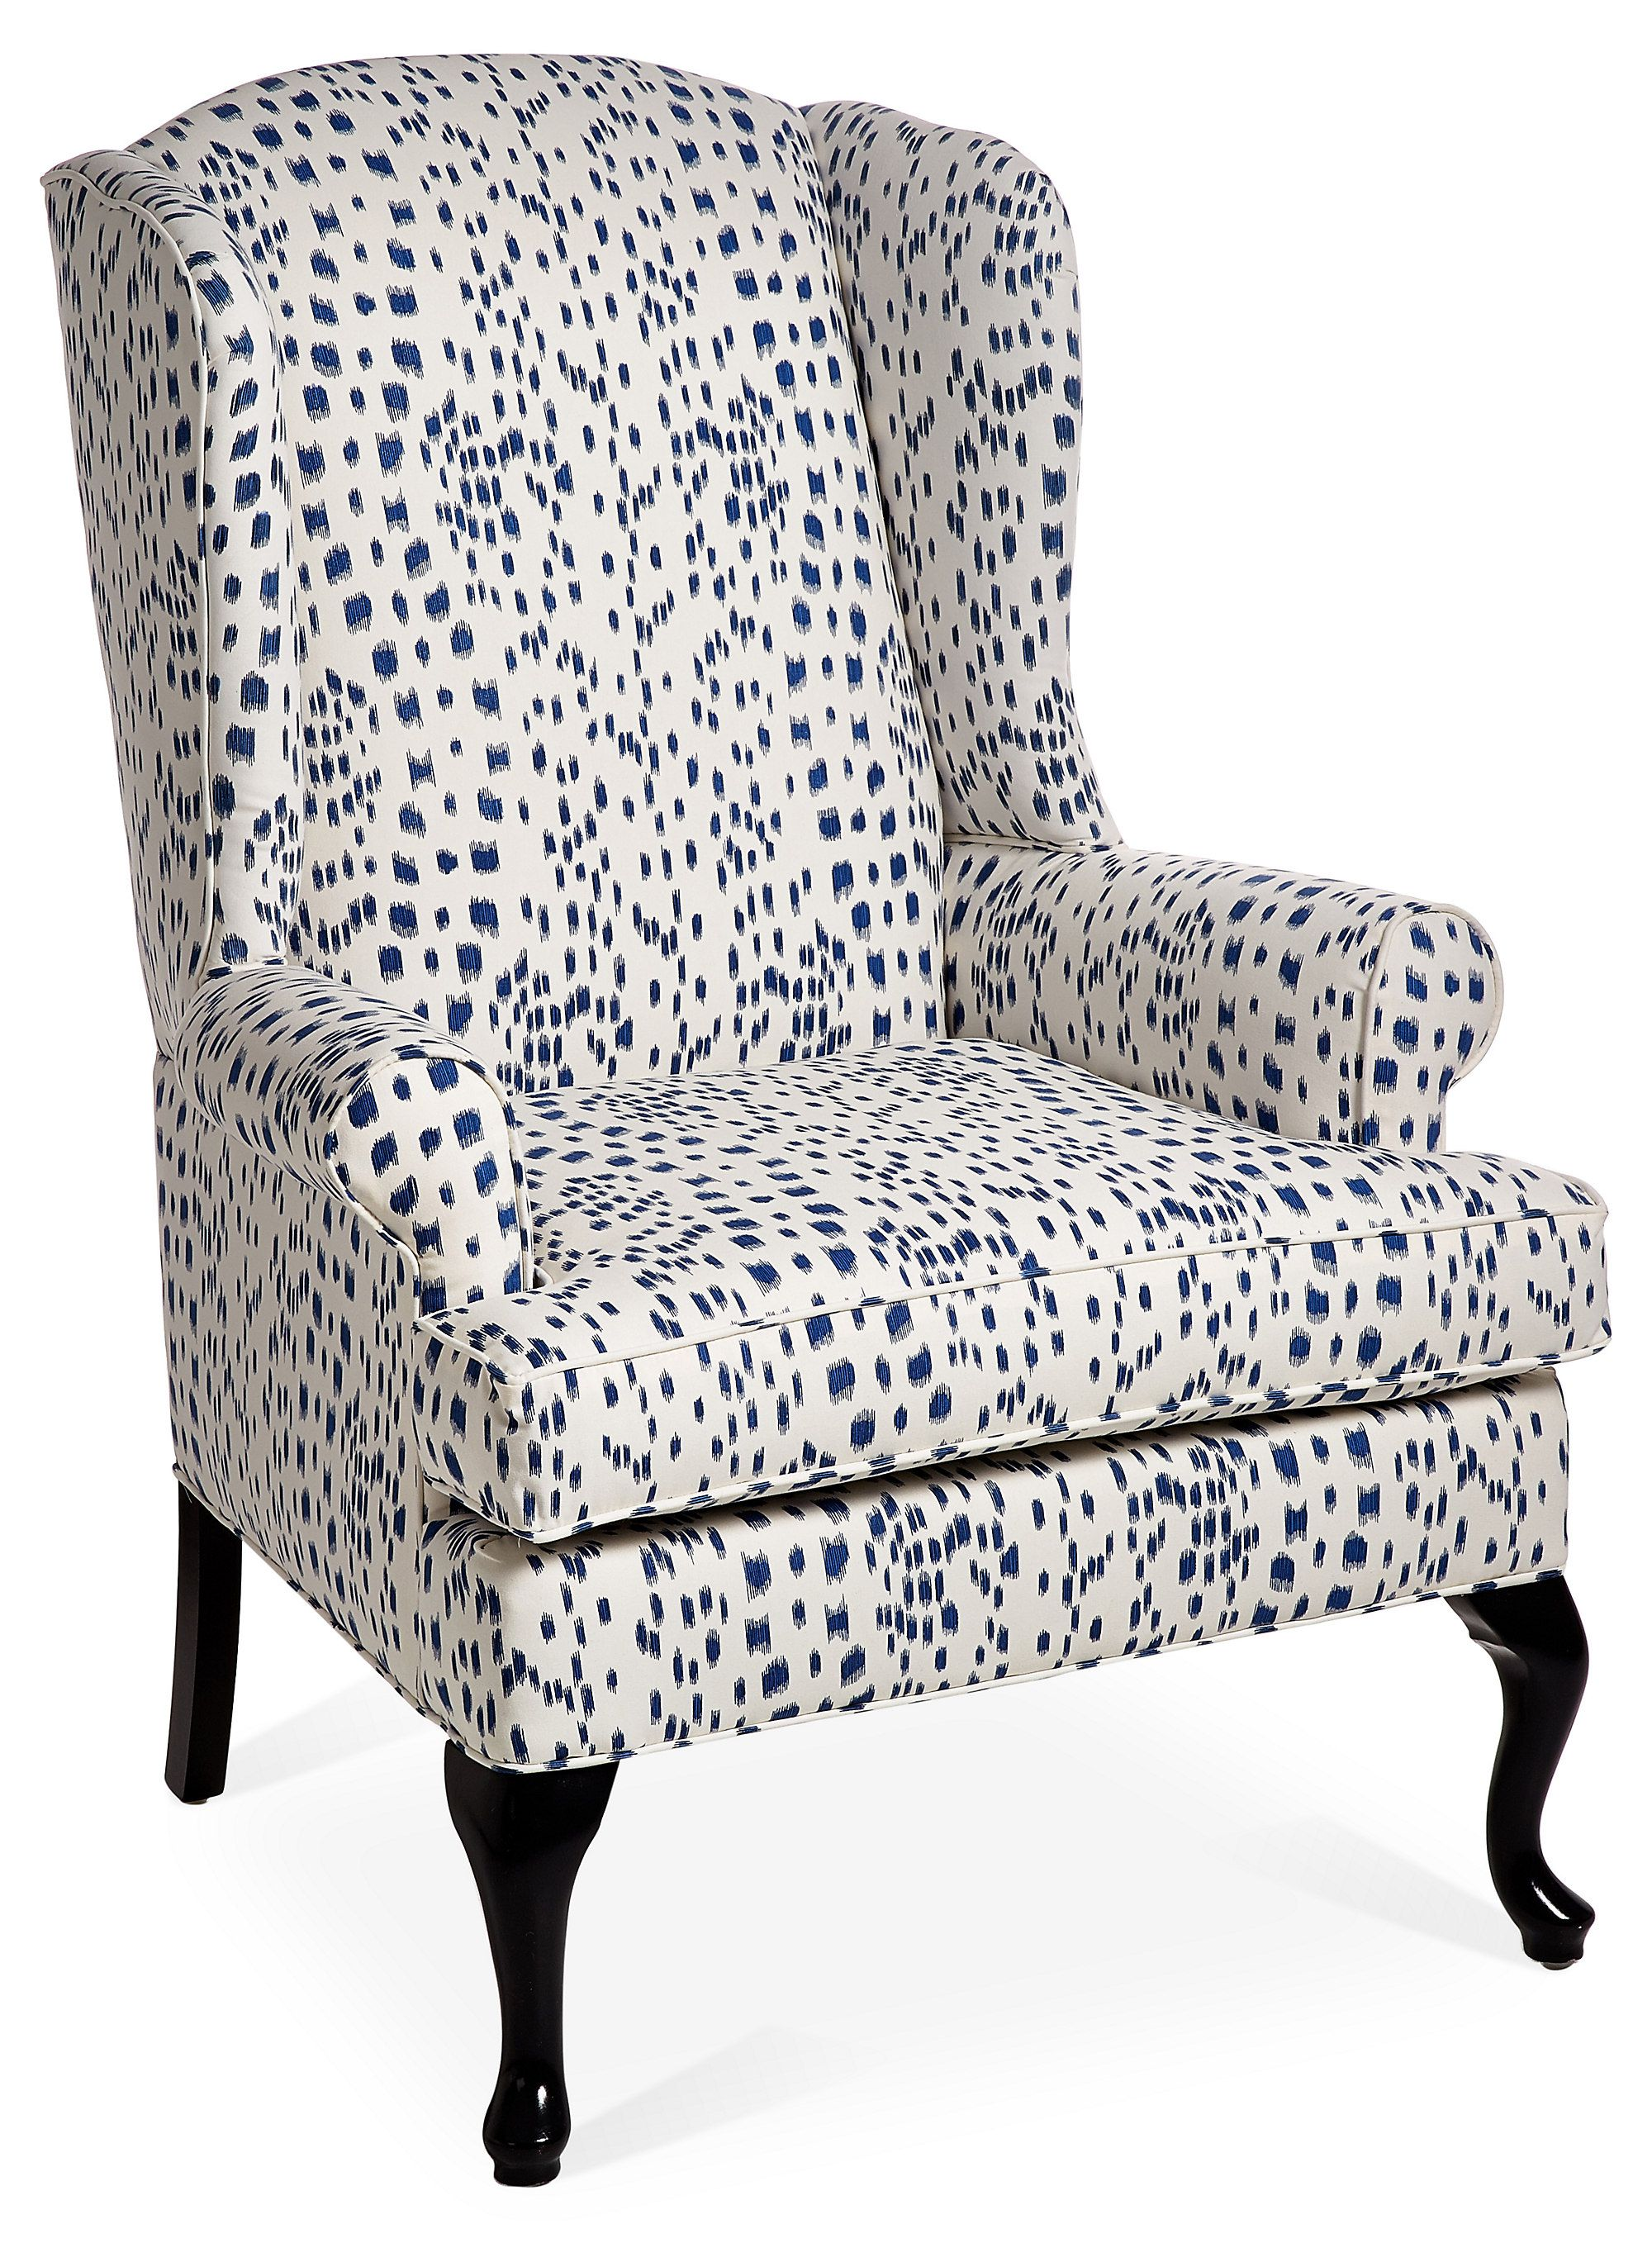 The classic wingback chair gets a modern update with